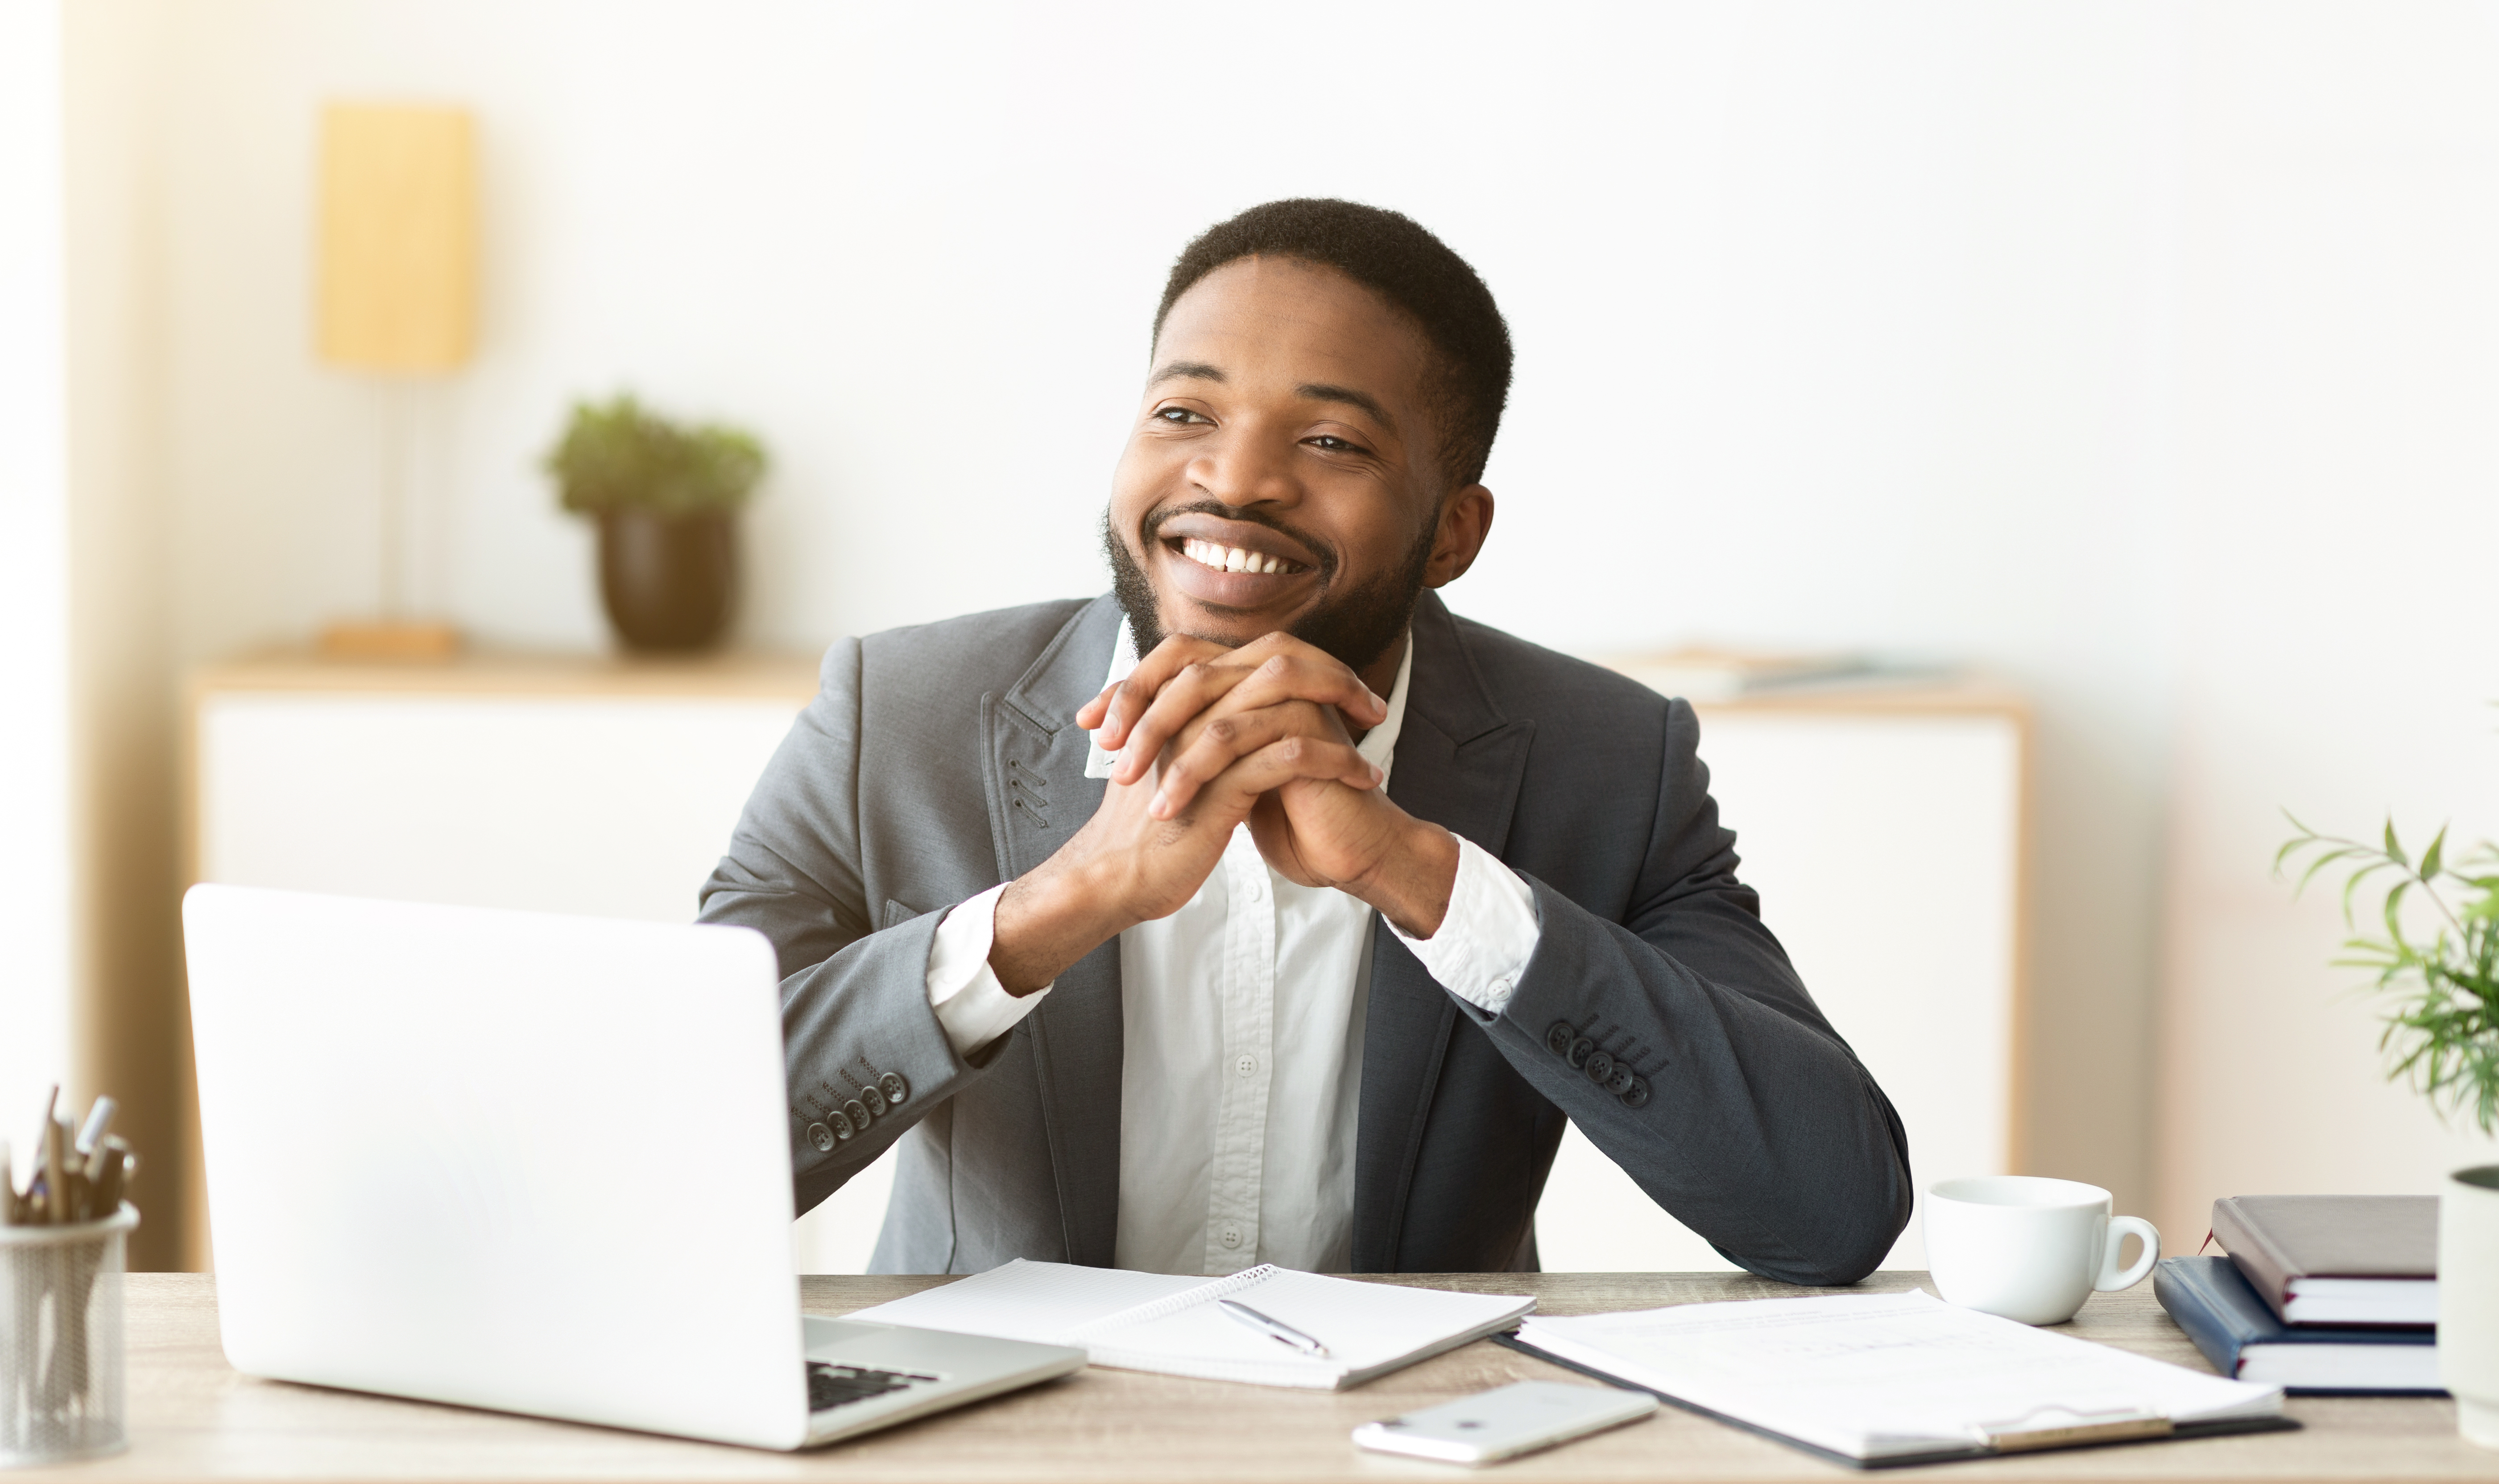 Dreamy african american businessman satisfied by results of his company, sitting at workplace in office